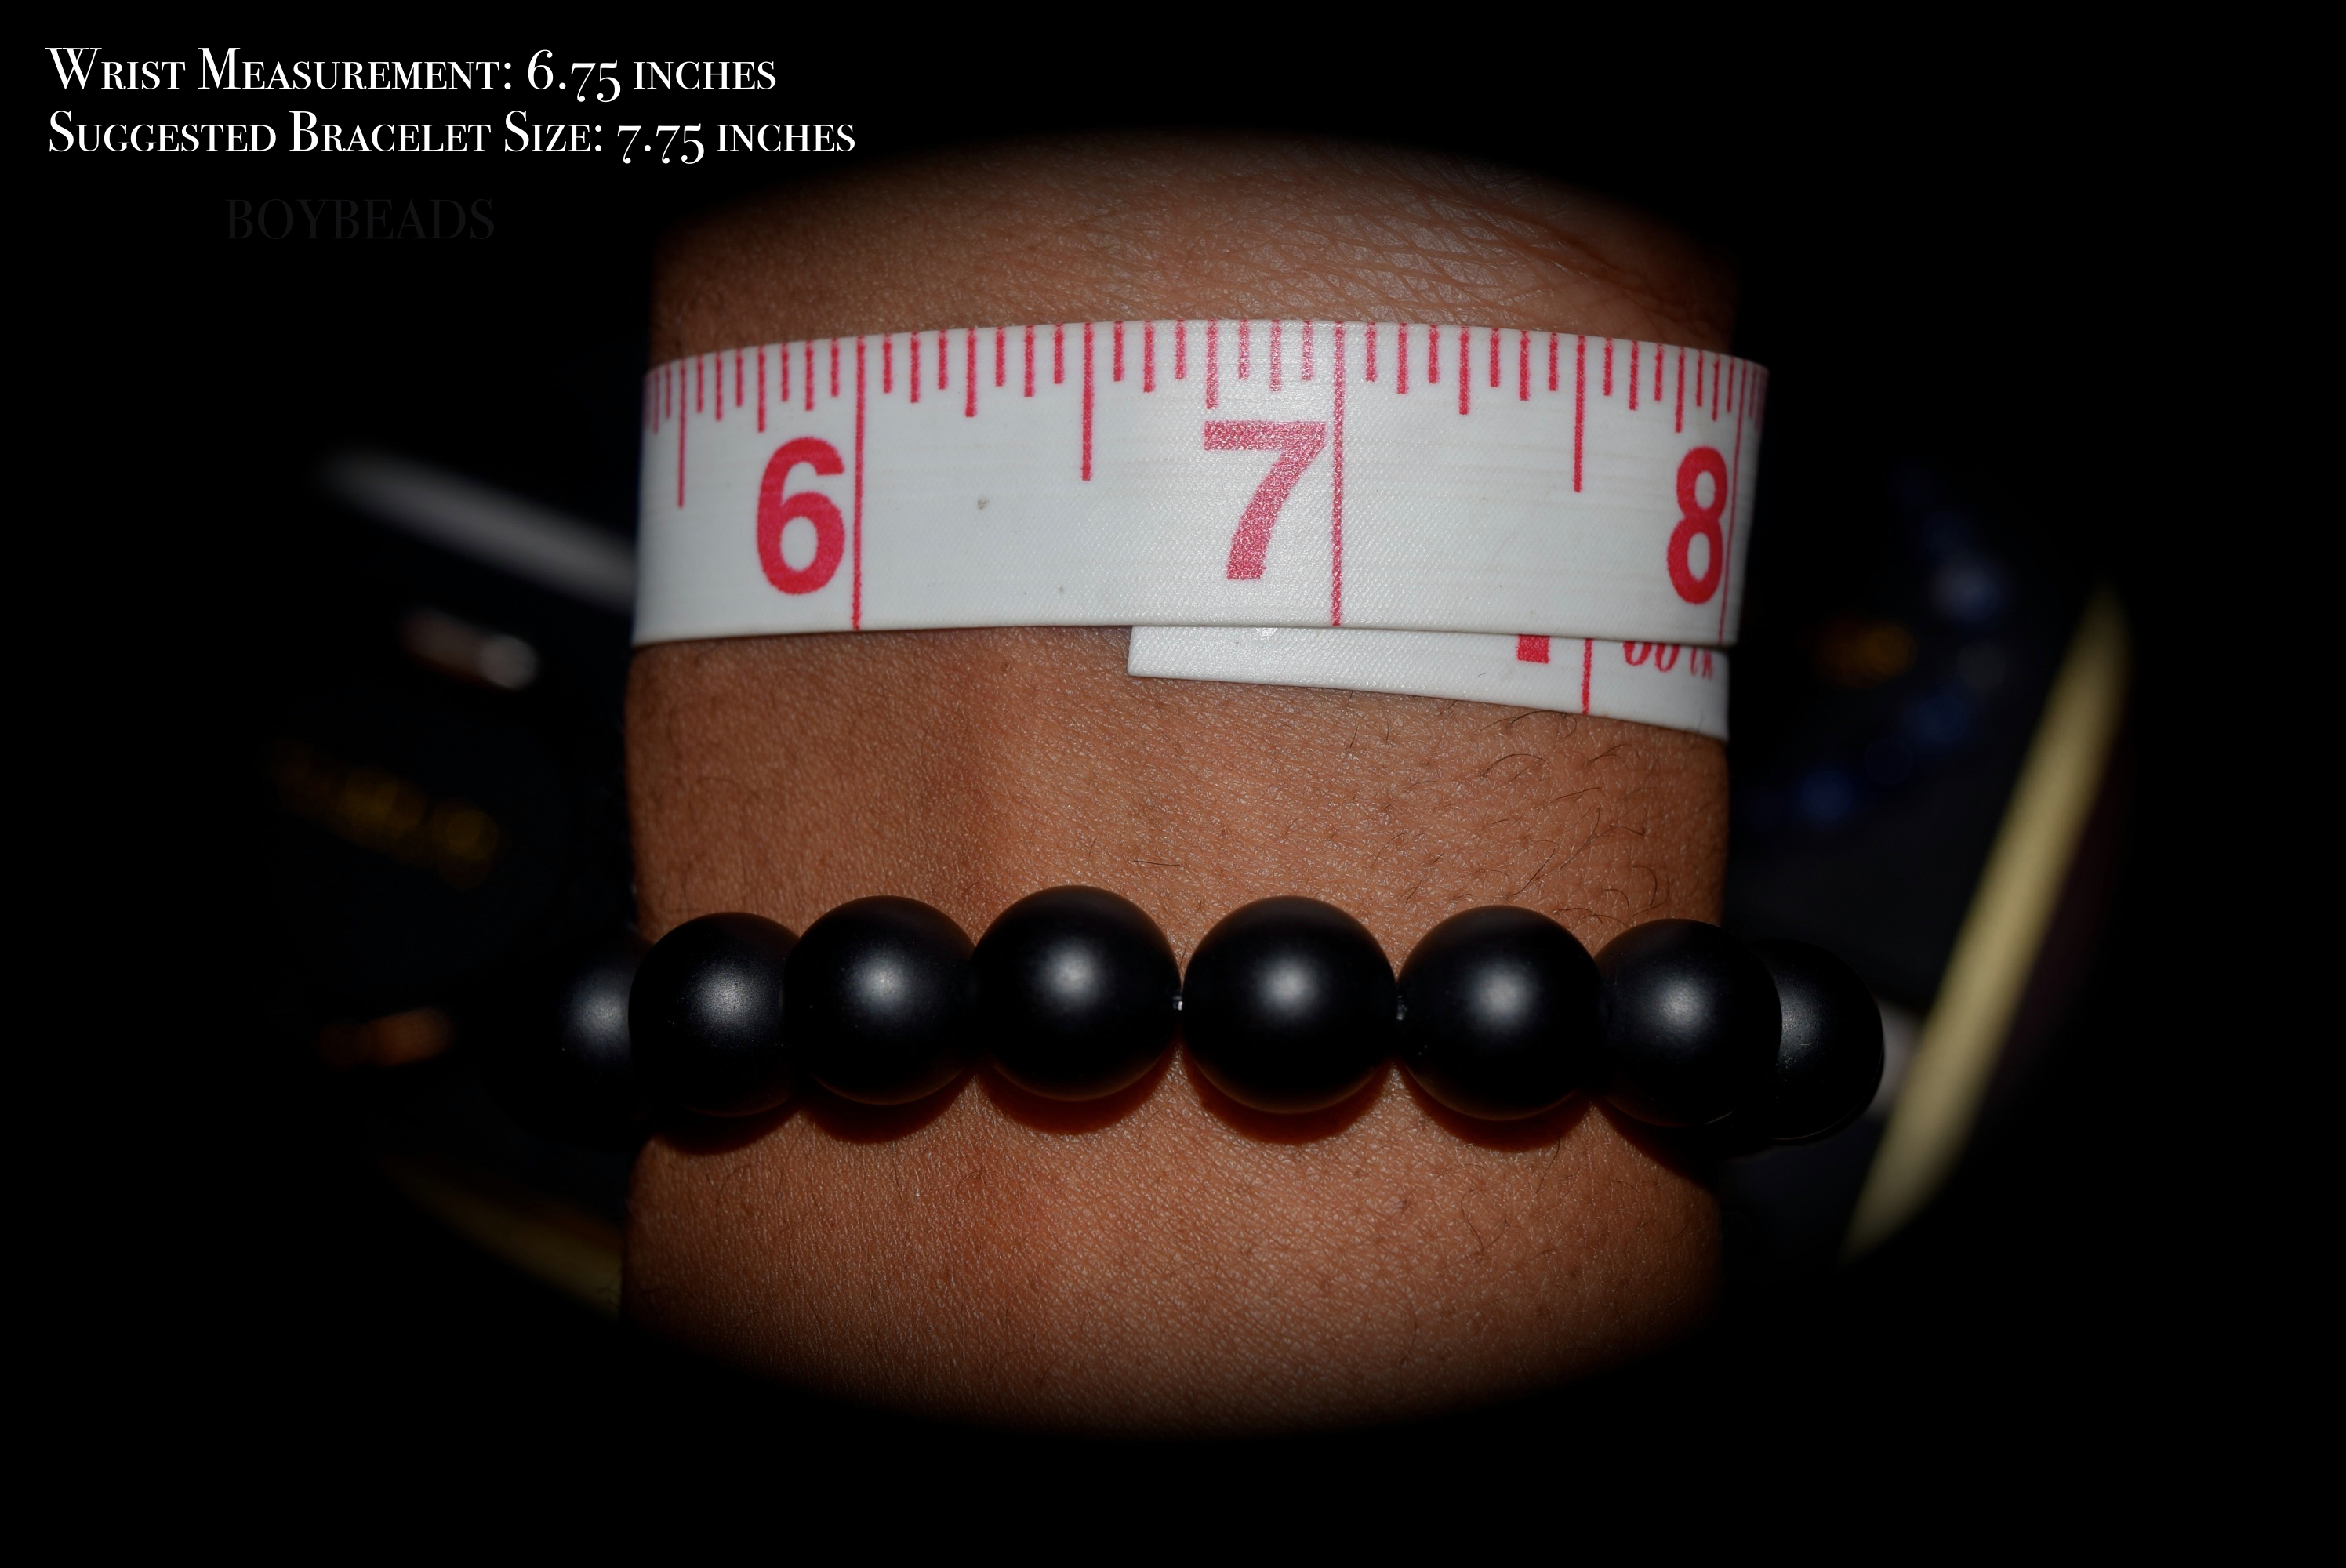 joe-matte-black-onyx-boybeads-how-to-measure-your-wrist-size-for-bracelet-fotor.jpg